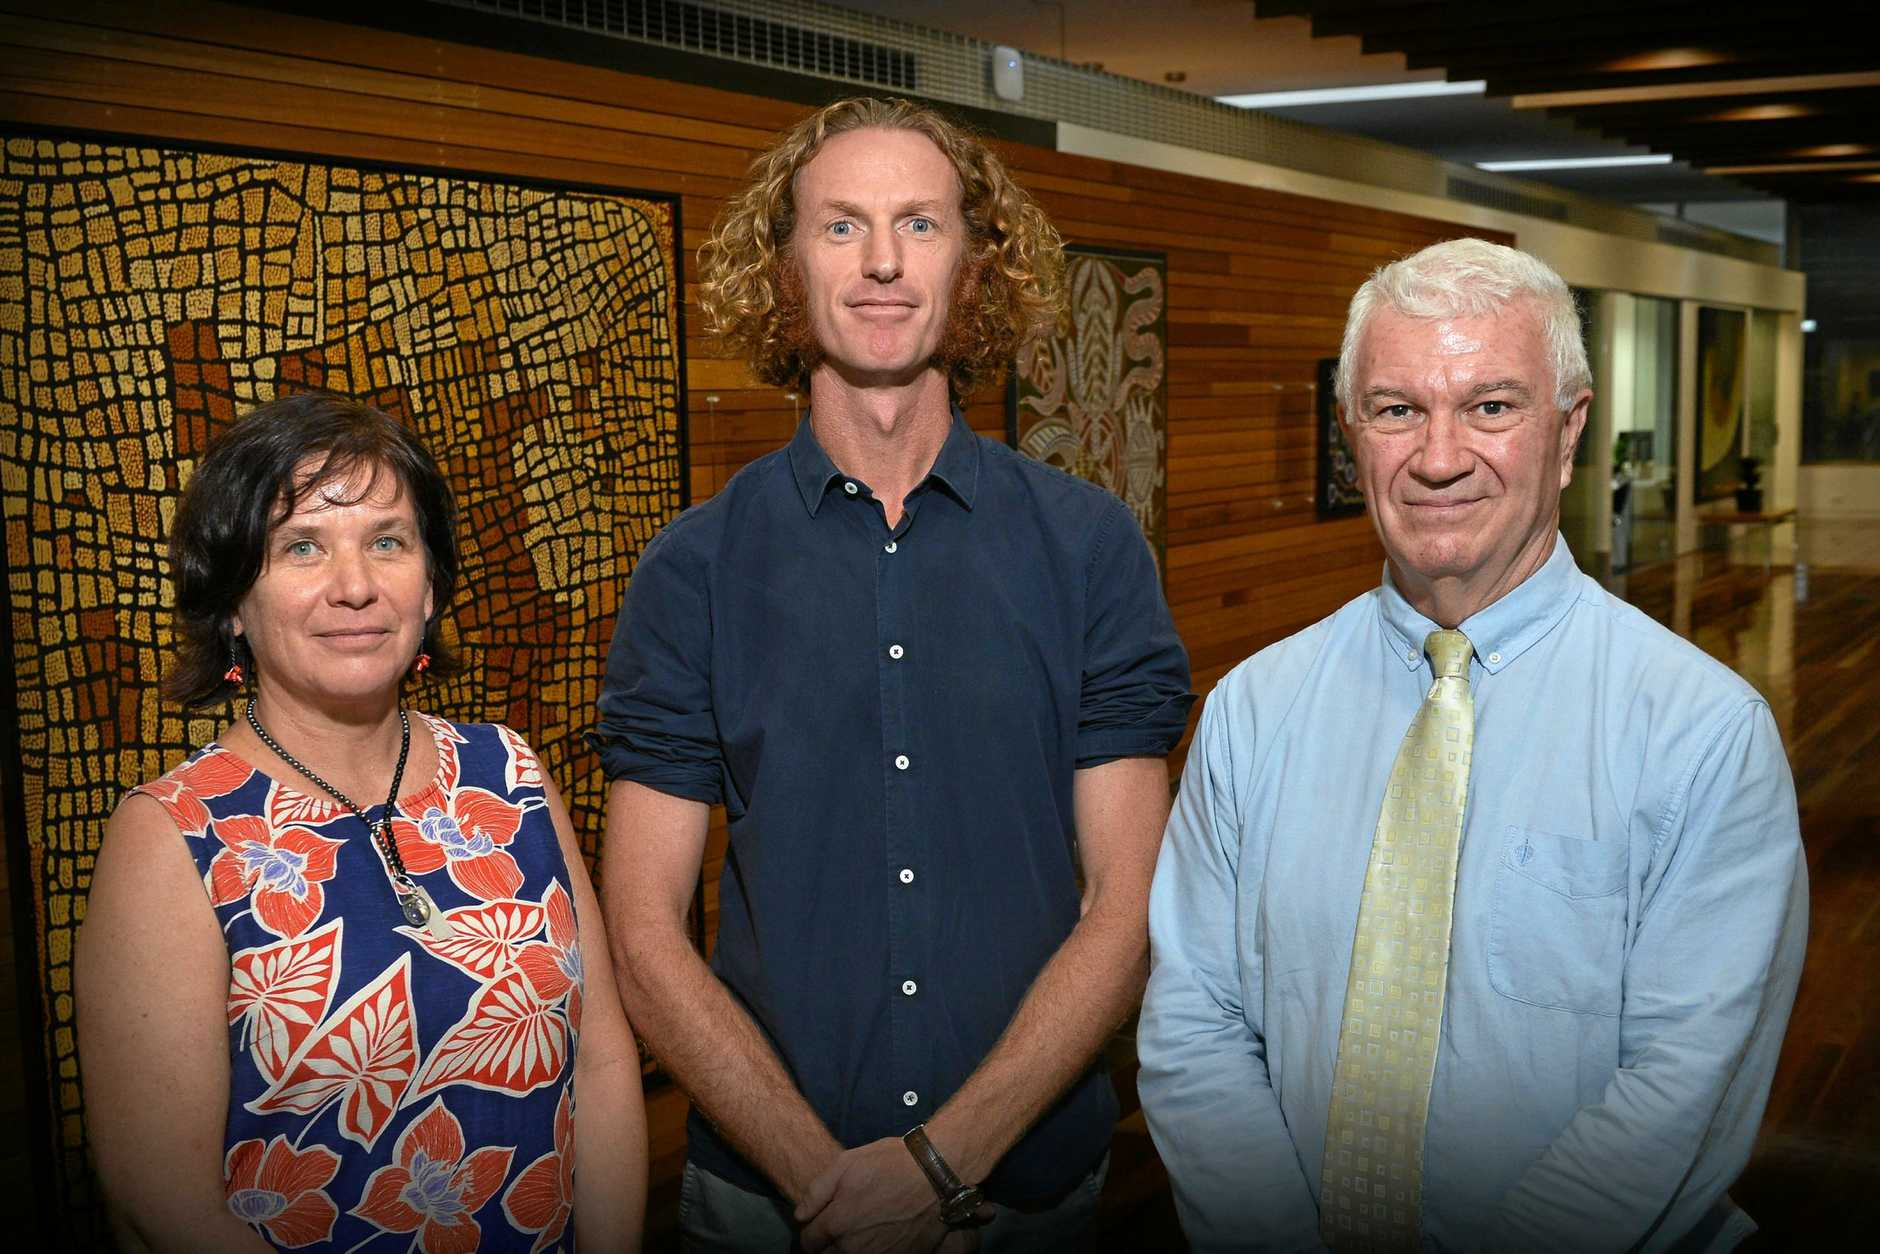 UQ phd scholar Madonna Boman, UQ associate professor Cameron Parsell and USC associate professor Phil Crane.